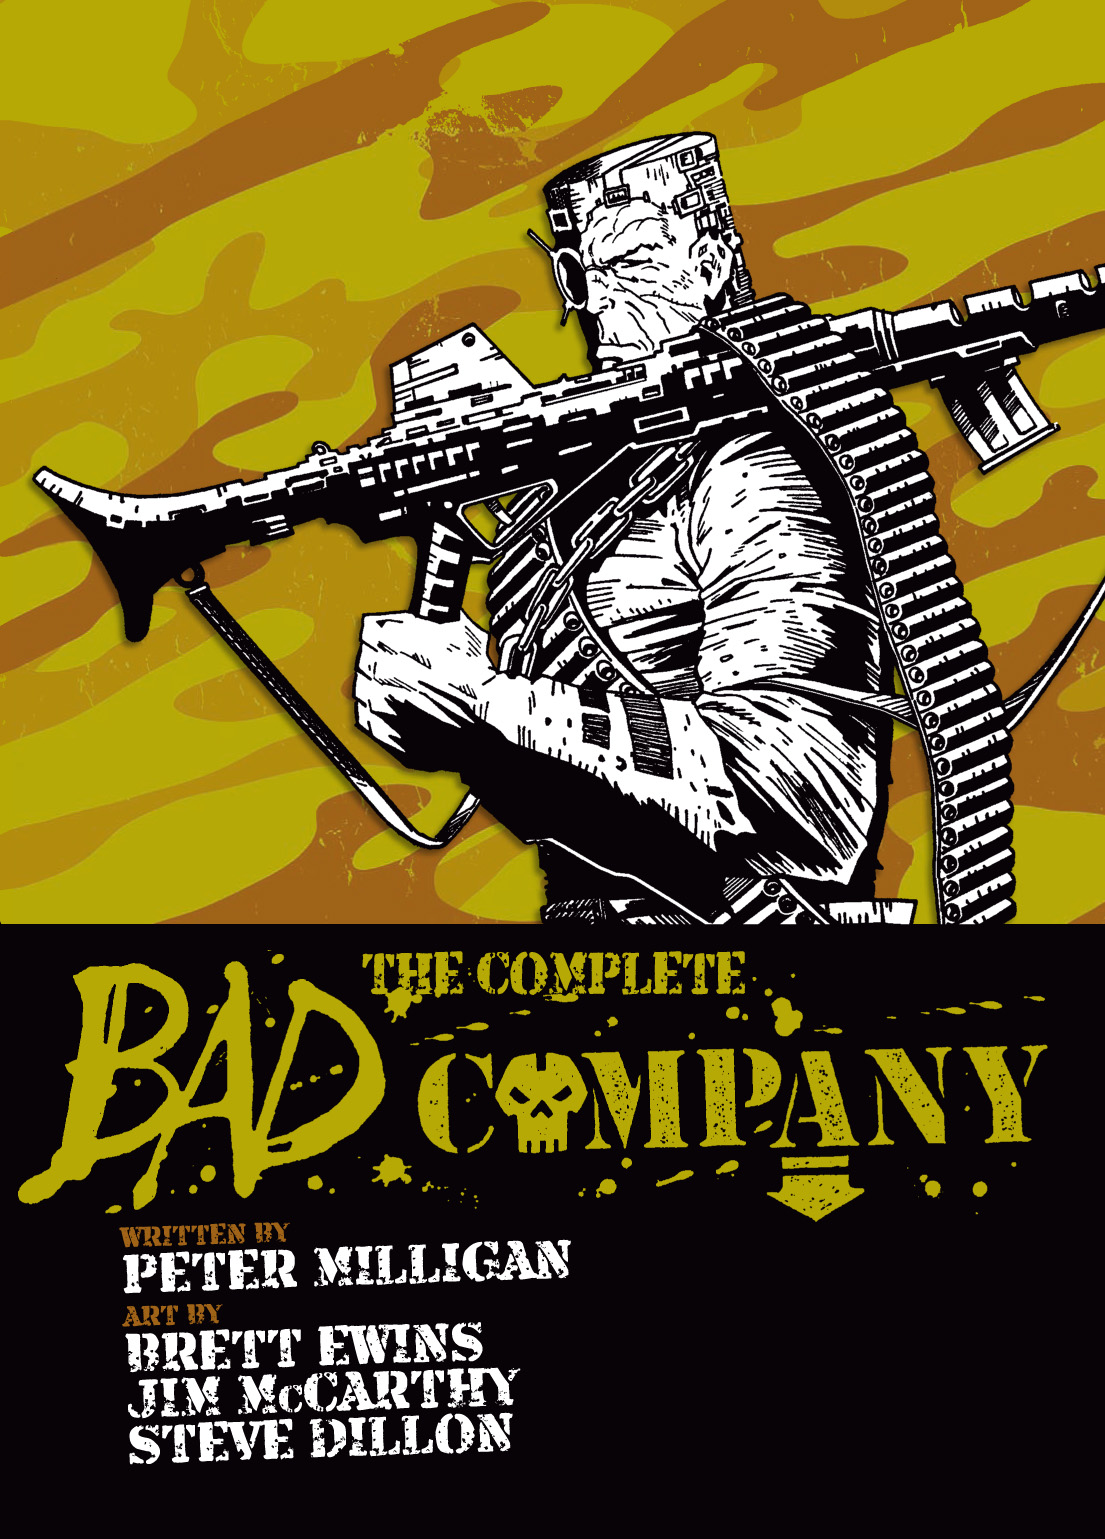 Read online The Complete Bad Company comic -  Issue # TPB - 1